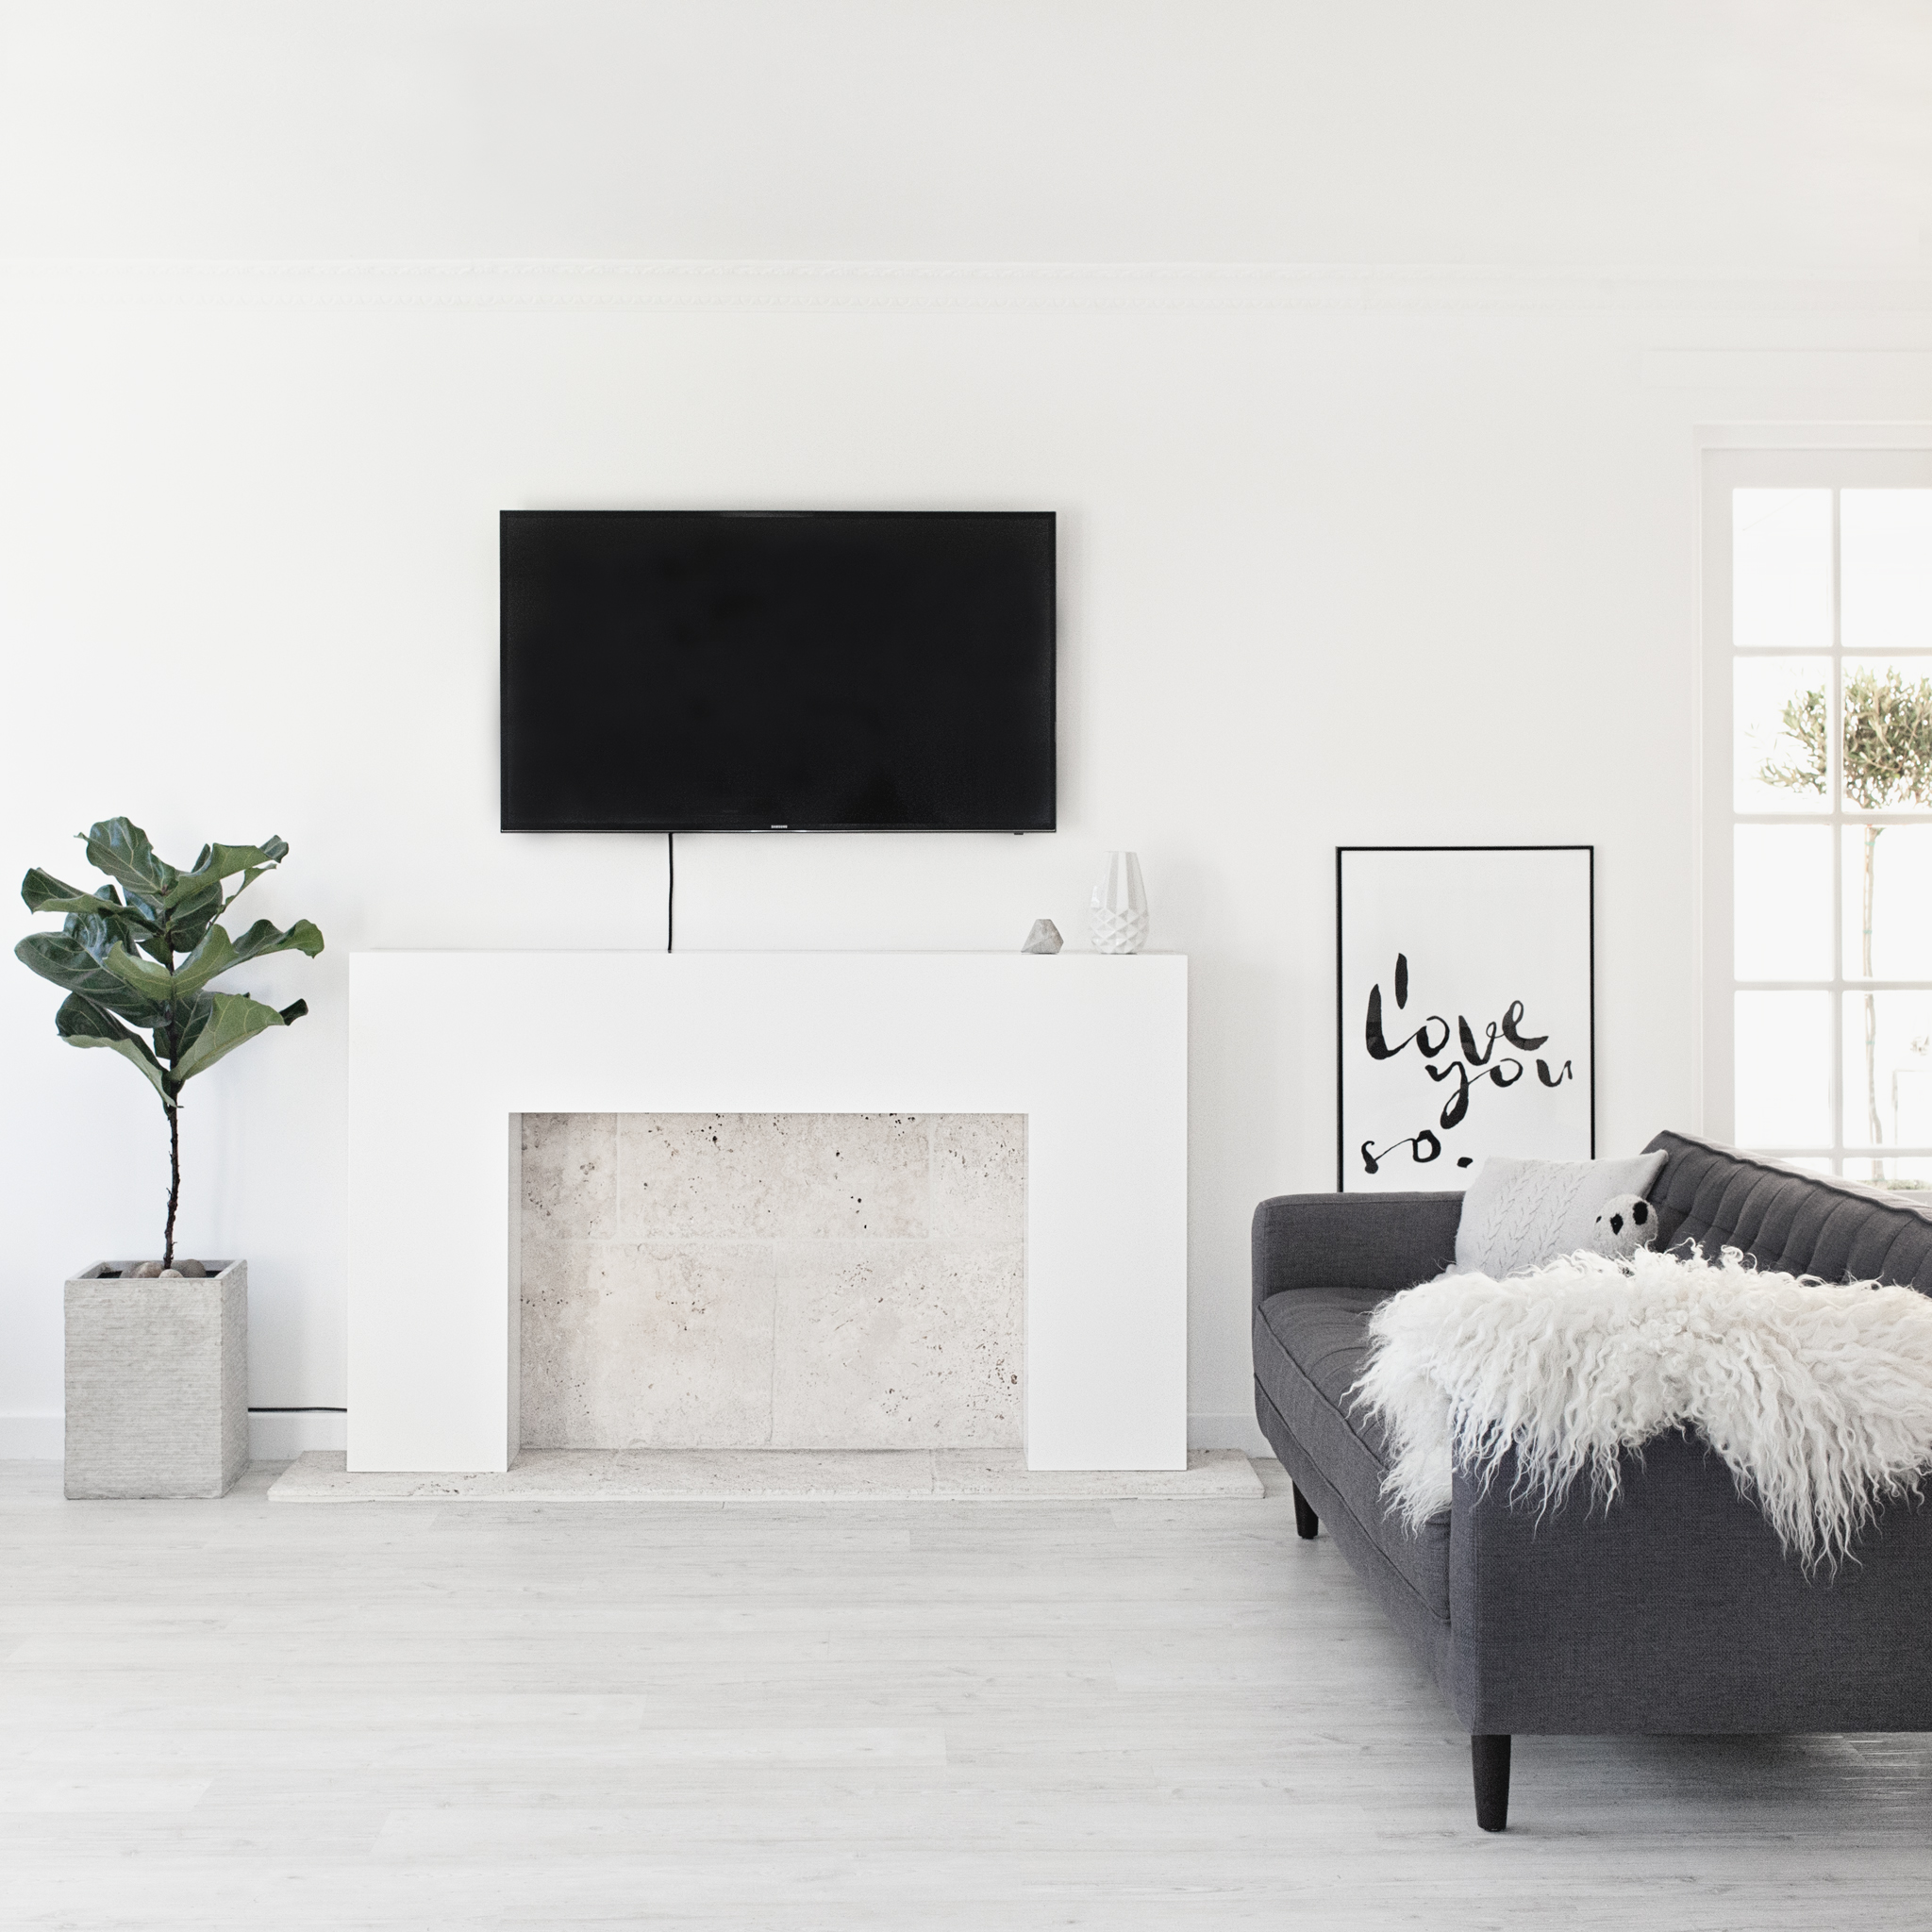 White Icelandic Sheepskin Rug from   Milabert  | 'I Love You So.' Poster from   Olive et Oriel